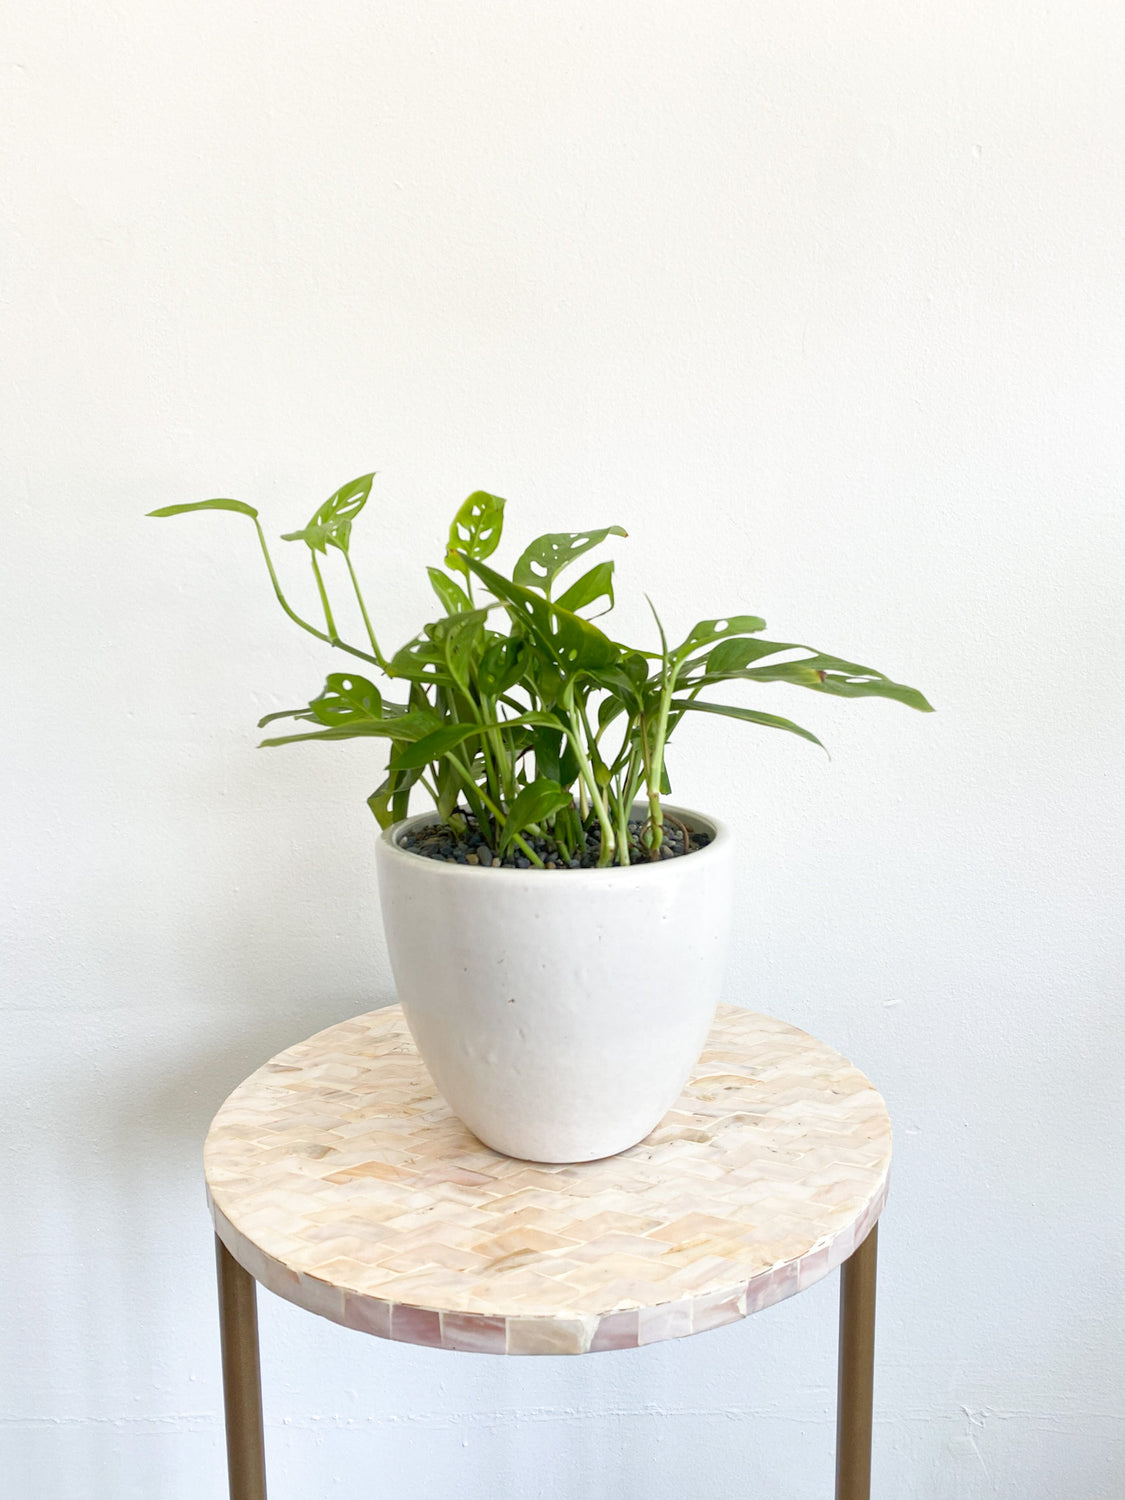 Swiss Cheese Plant in White Cylinder Pot: Monstera Adansonii